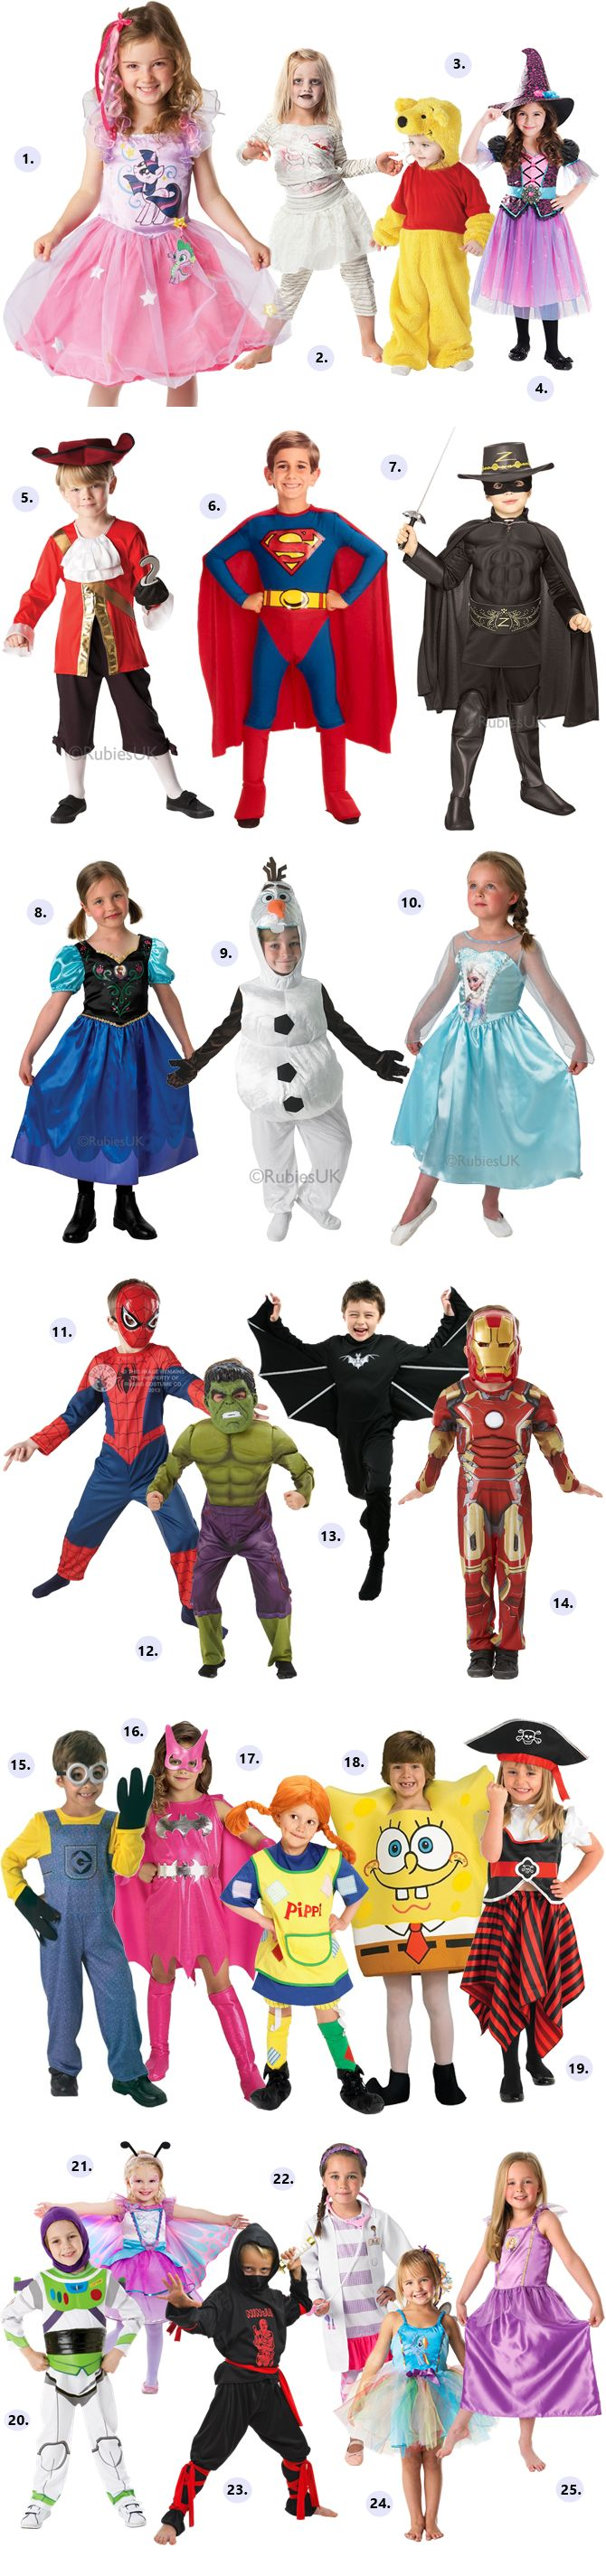 25 fun Halloween costume ideas for kids. Everything from princesses, pirates and ninjas to  Olaf, Spongebob and Pippi. Even Minions, Iron-Man and the Hulk. You will for sure find a favorite here.  http://www.reidunbeate.com/2015/10/05/25-goyale-barnekostymer-til-halloween/